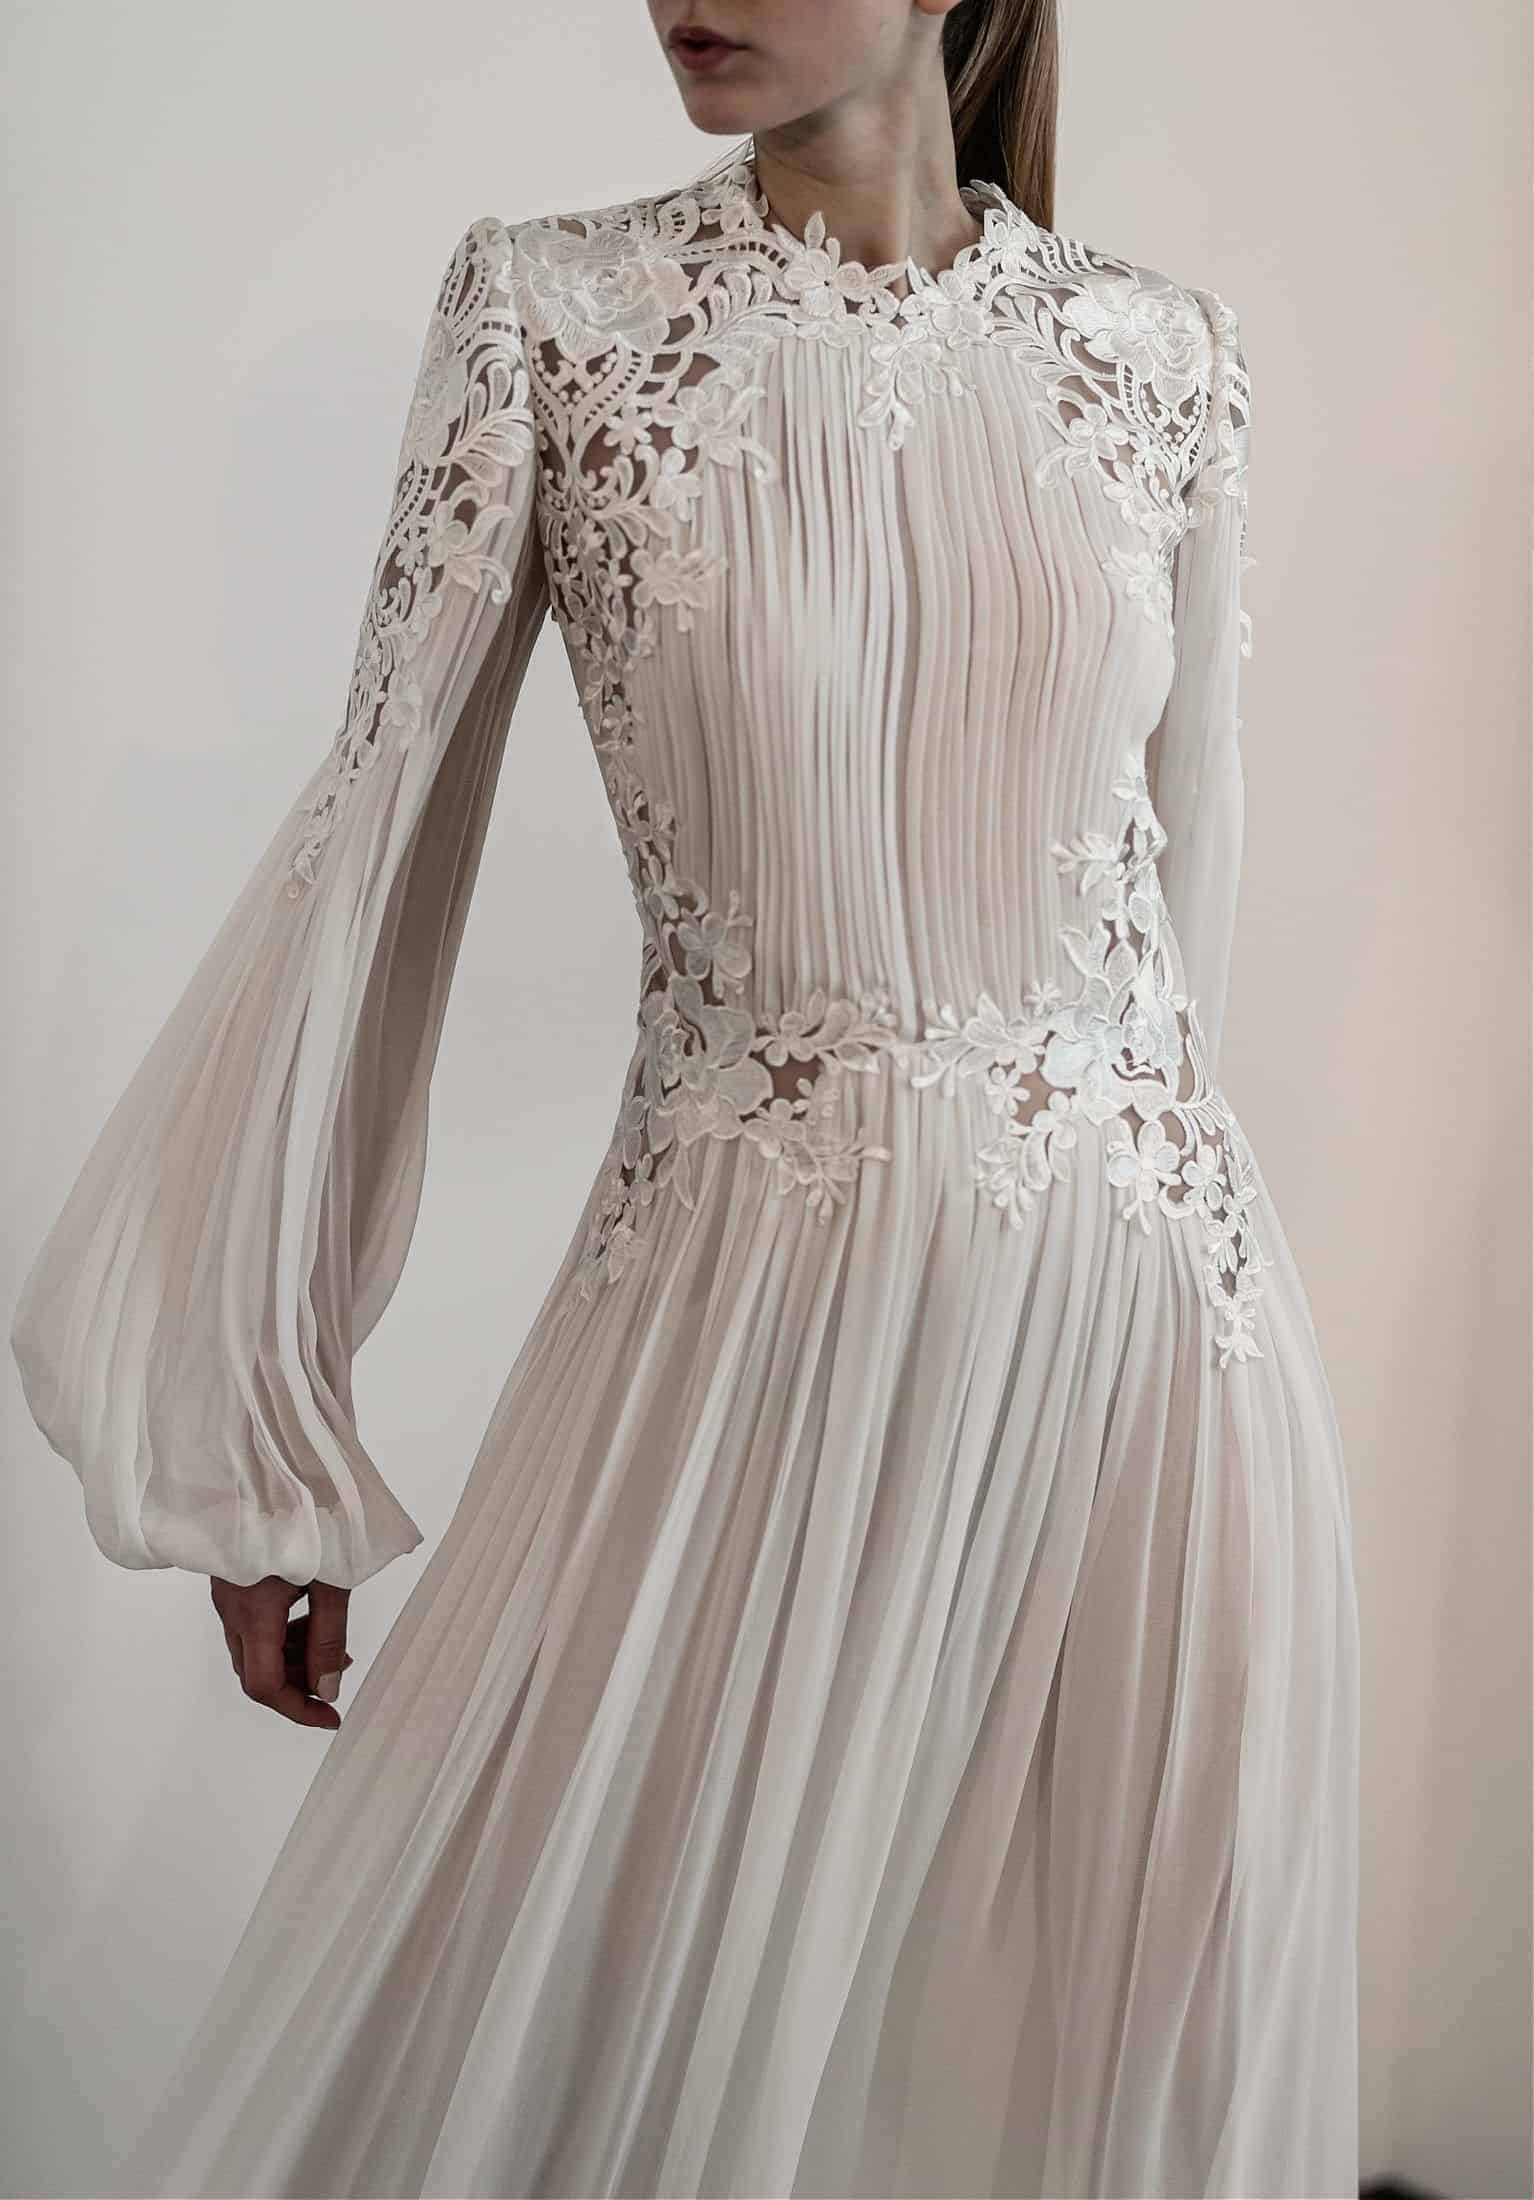 a wedding dress by Costarellos Bridal House with pleated base and long sleeves with lace details